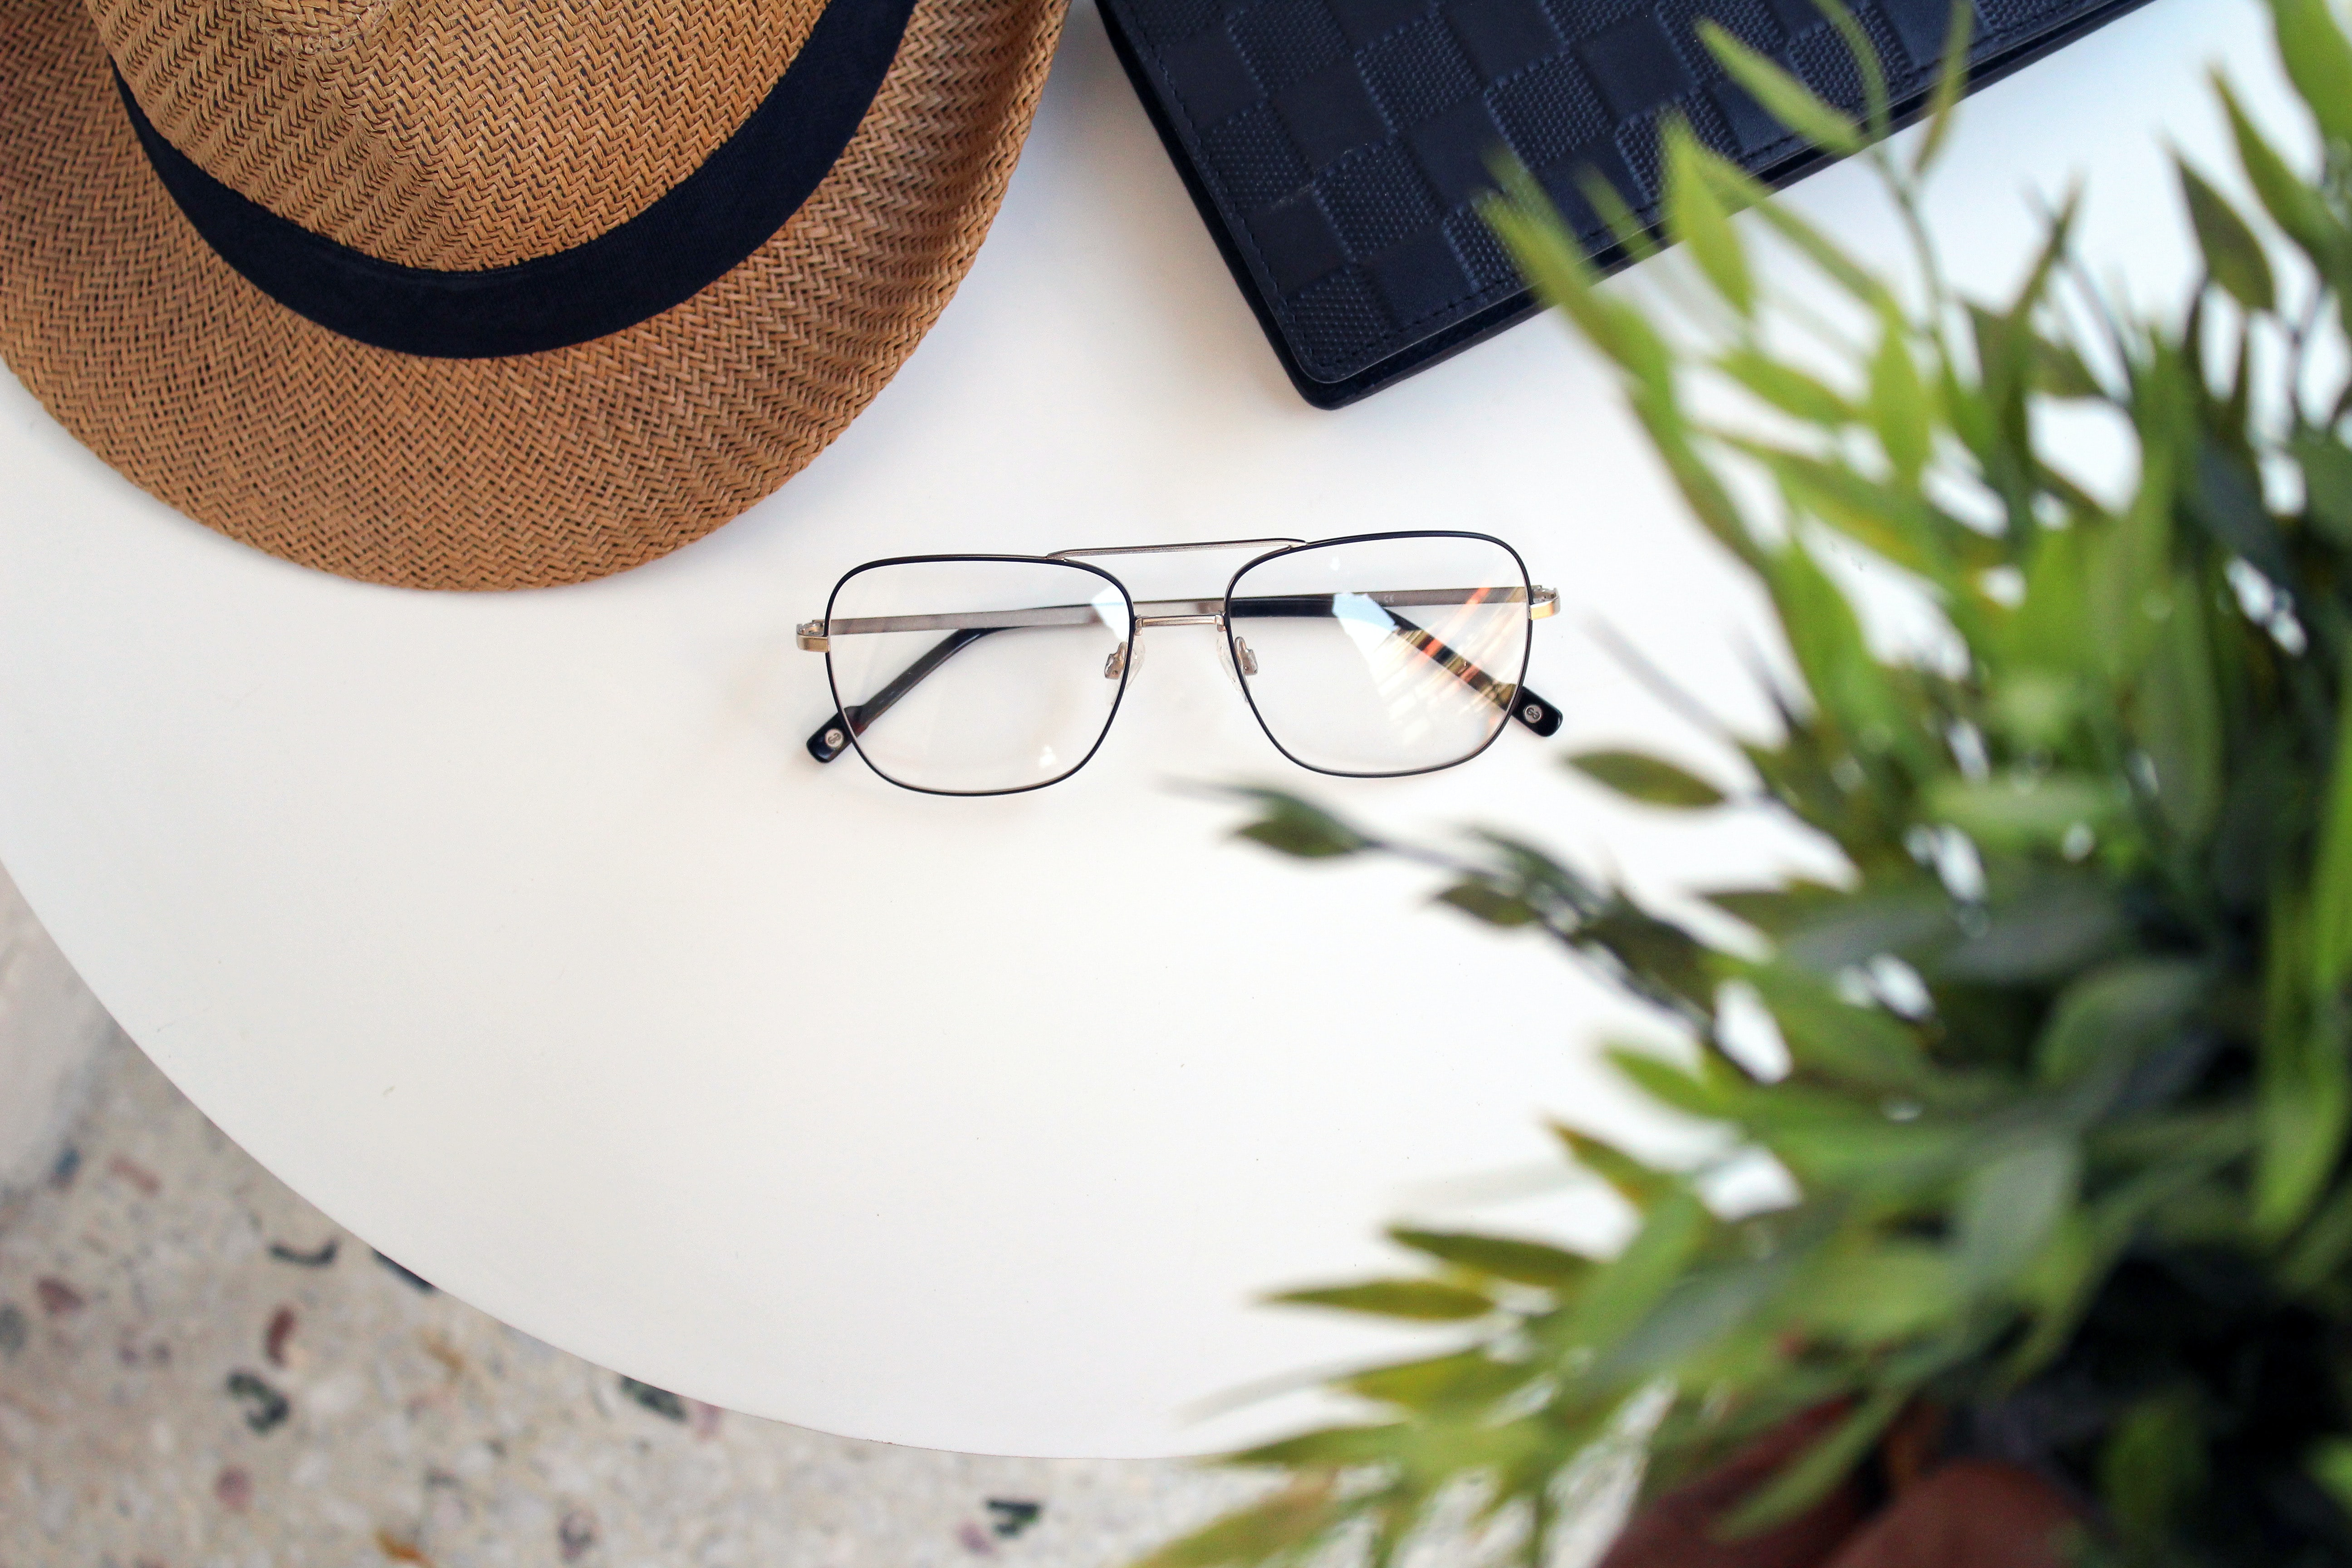 flat lay photography of sunglasses beside sun hat on table